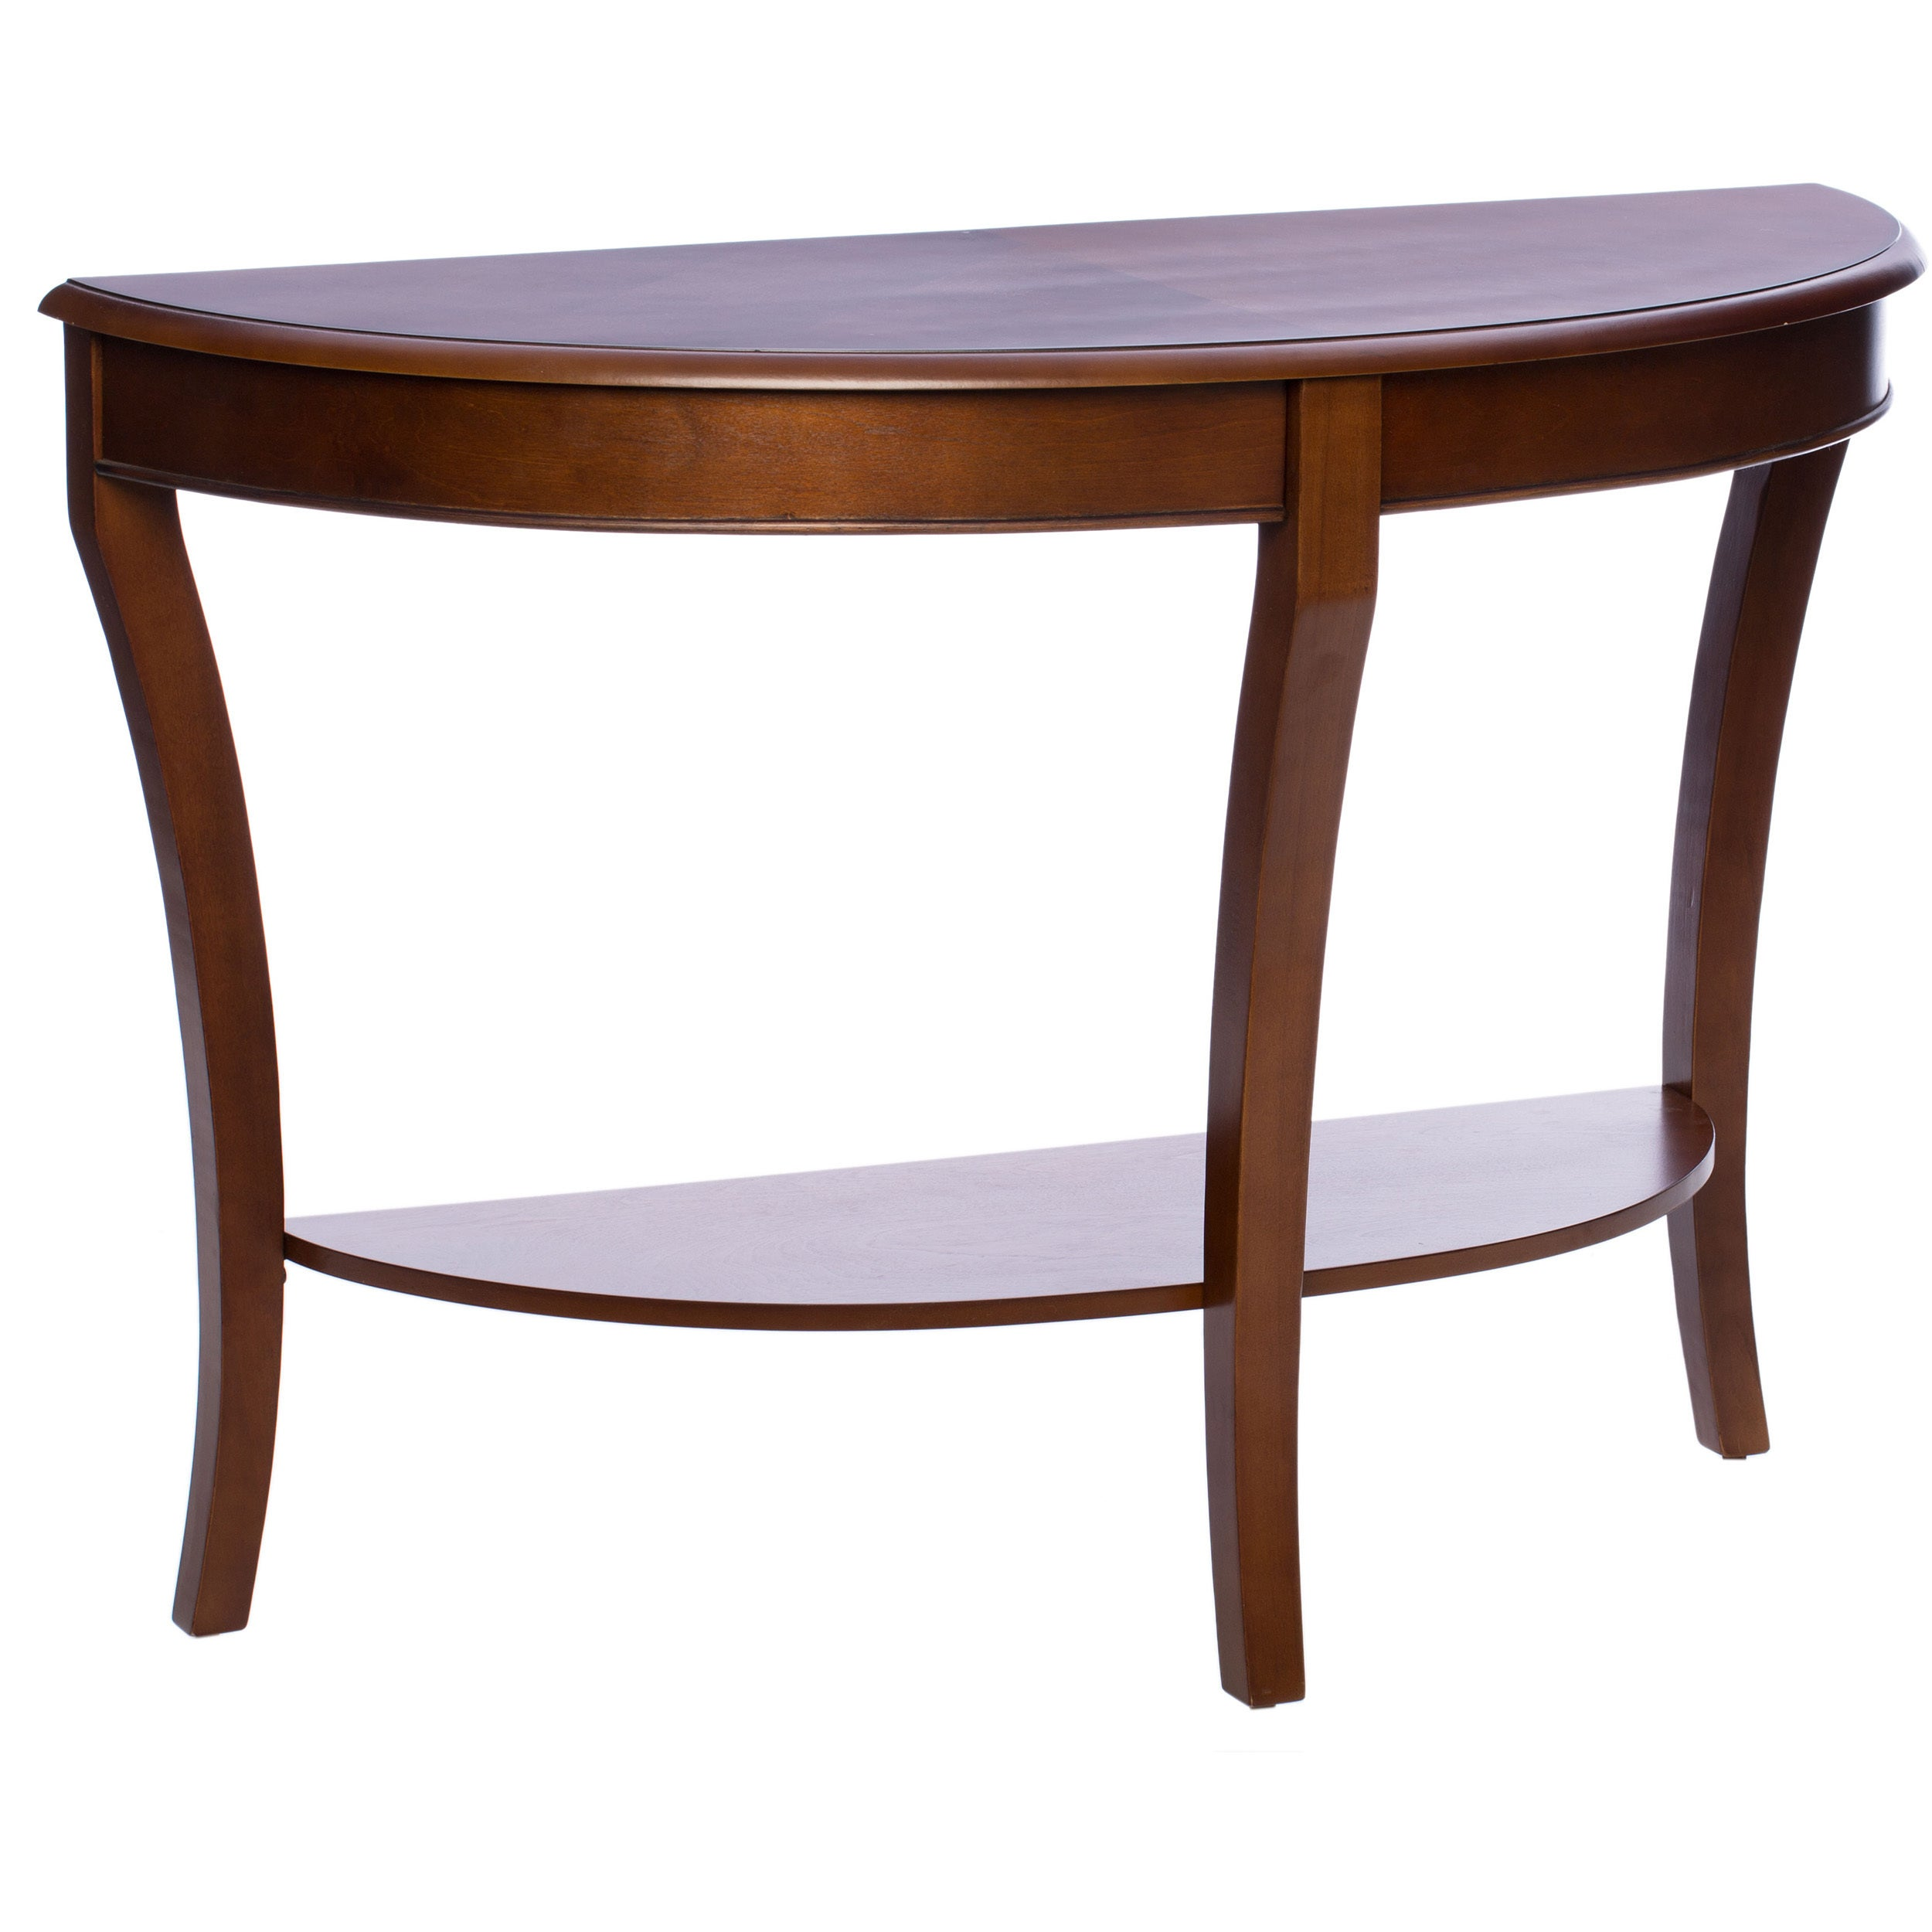 Ordinaire Shop Copper Grove Half Round Sofa Table   Free Shipping Today    Overstock.com   2993057